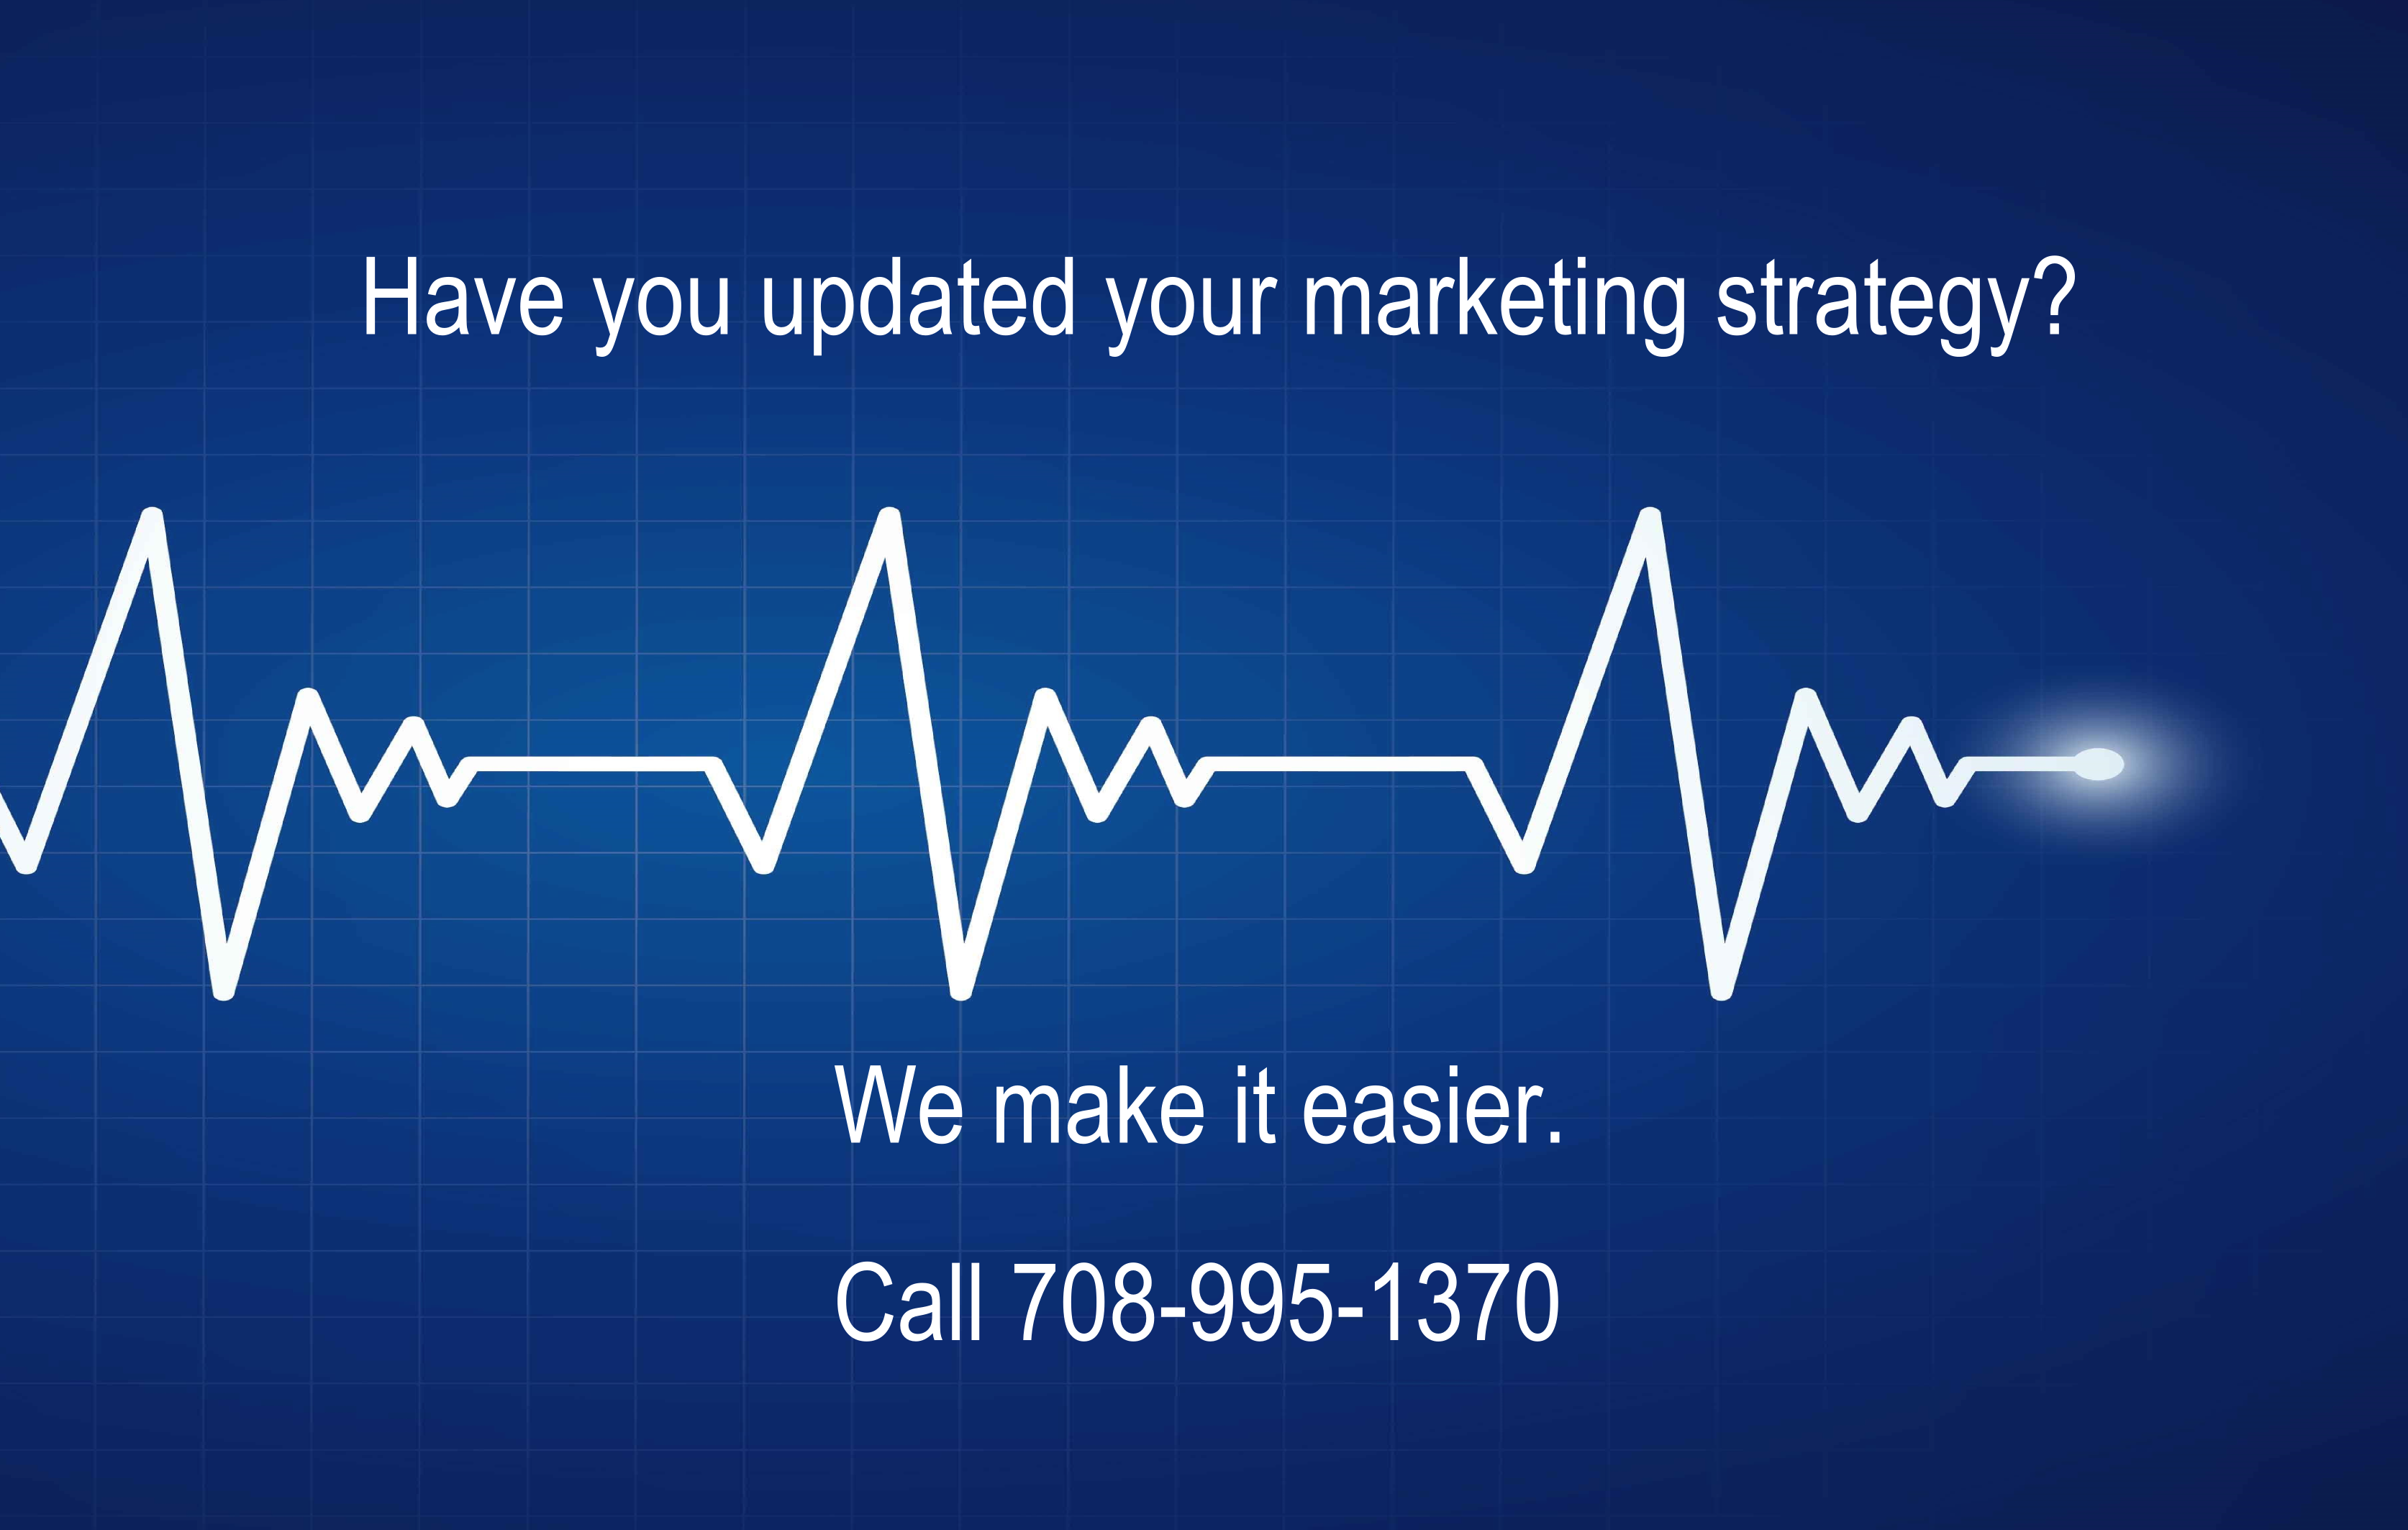 Carestruck Digital Marketing & Communications